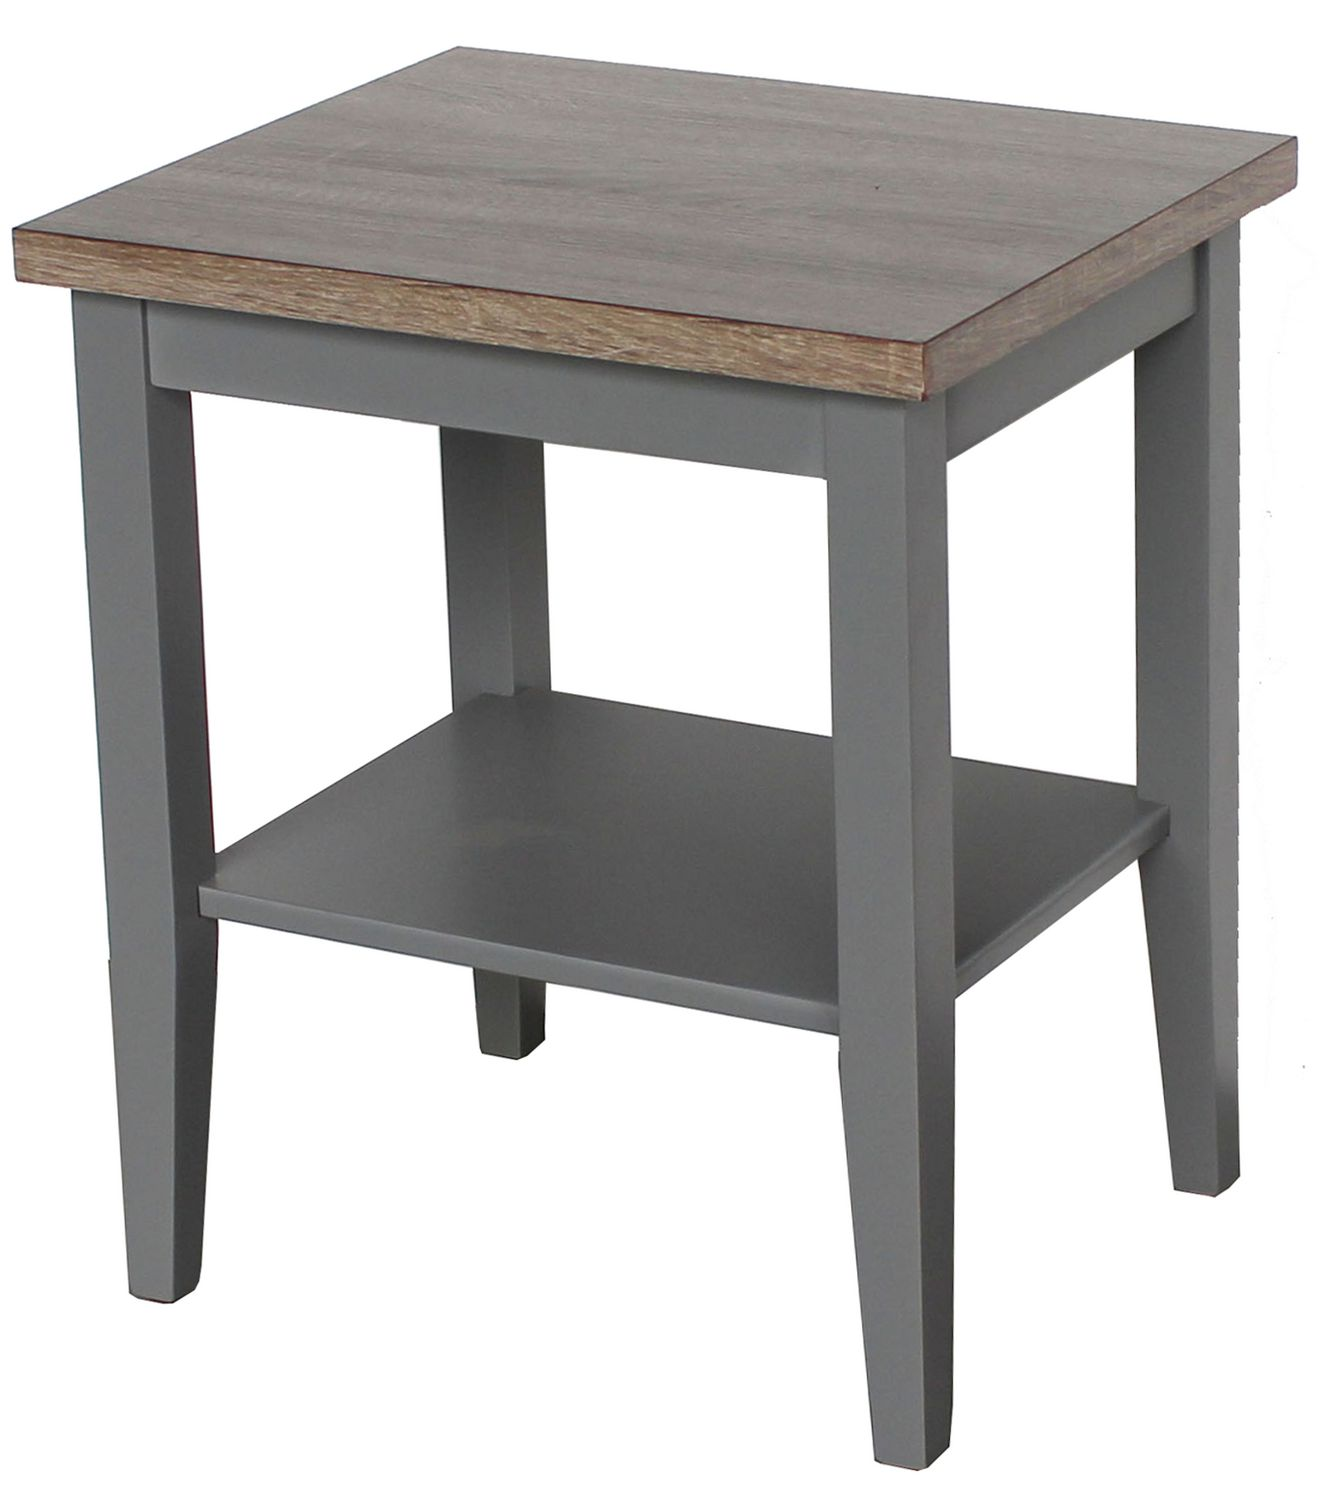 Table Walmart: Hometrends End Table